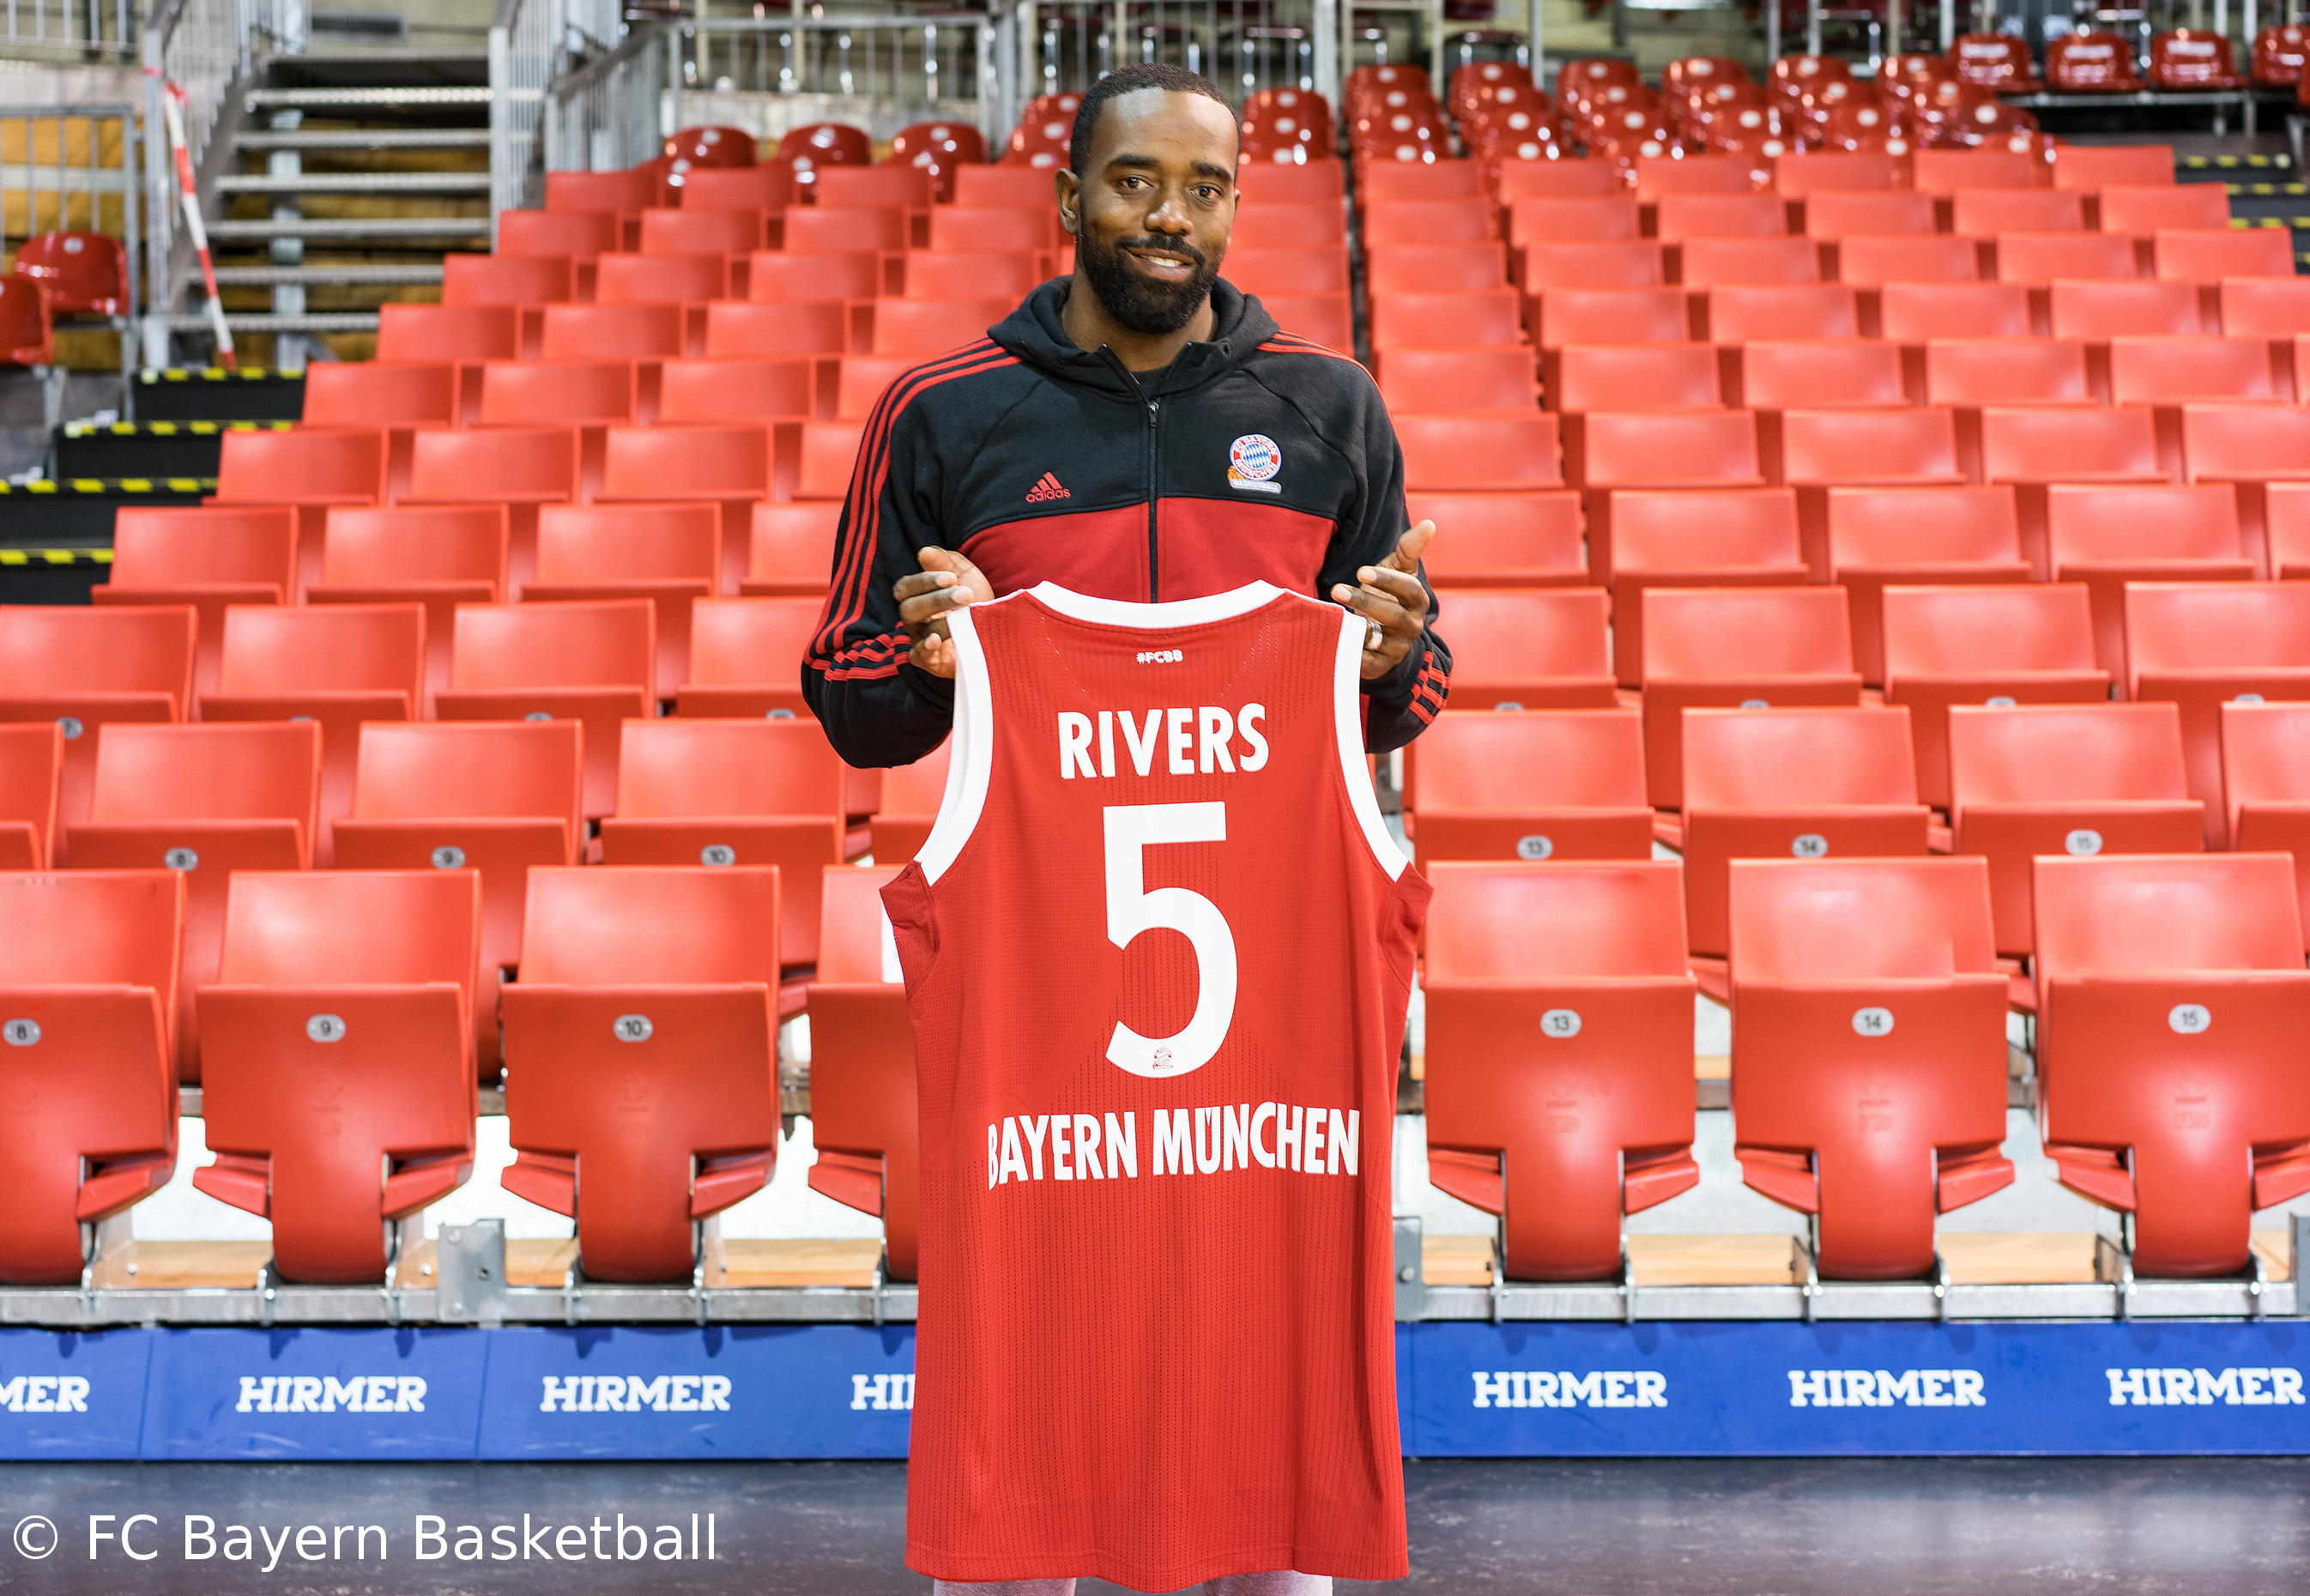 Ex-Bayer K. C. Rivers vor neuem Mega-Deal